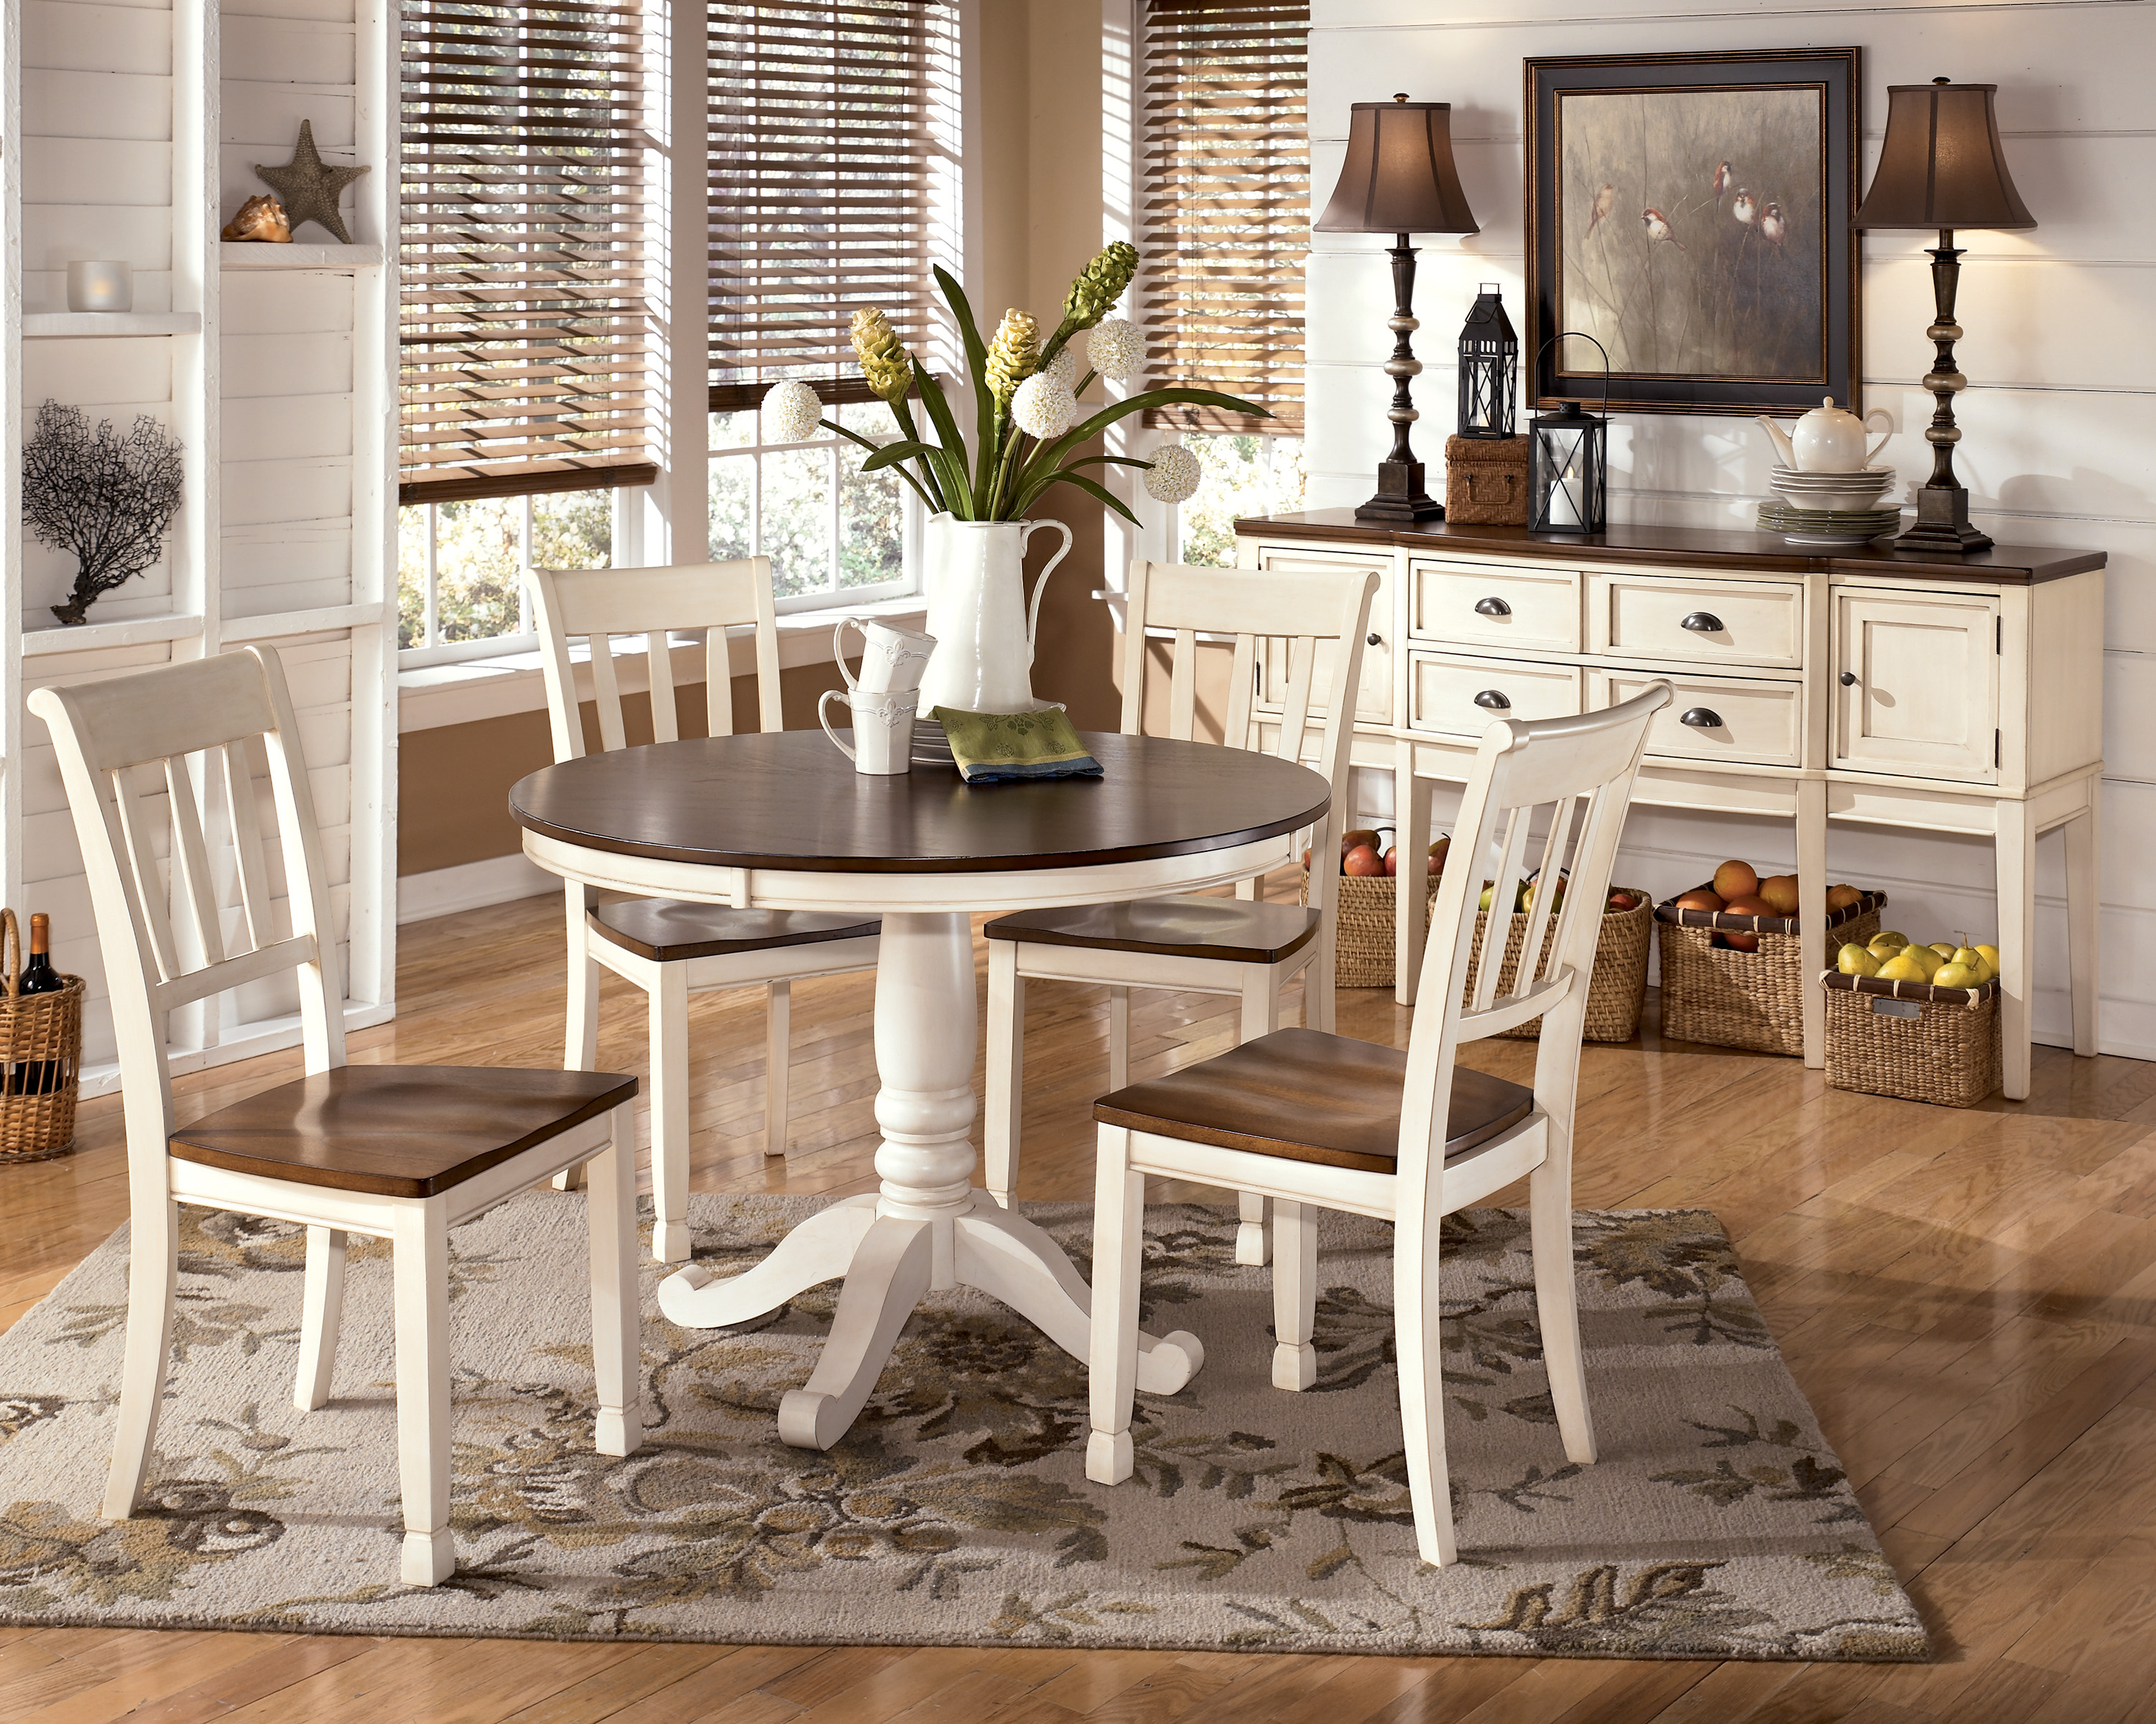 whitesburg 5 piece round dining table set in brown white white kitchen tables Whitesburg 5 Piece Round Dining Table Set in Brown White by Dining Rooms Outlet